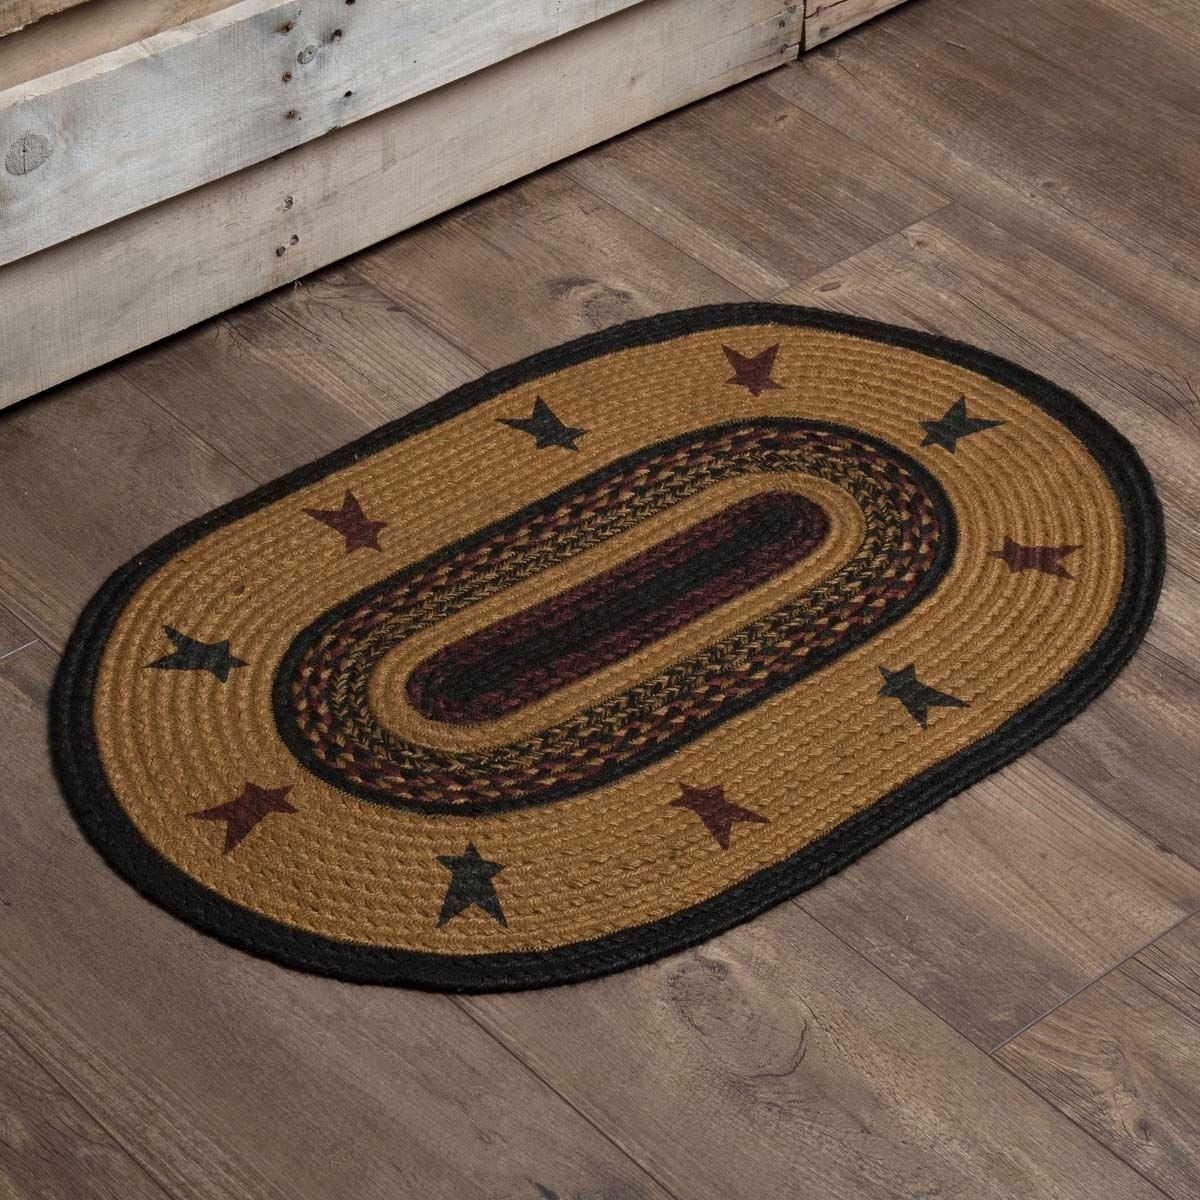 Yellow Primitive Flooring Vhc Heritage Farms Star Rug Jute Stenciled Oval 1 8 X 2 6 Oval Rugs Primitive Homes Primitive Stars